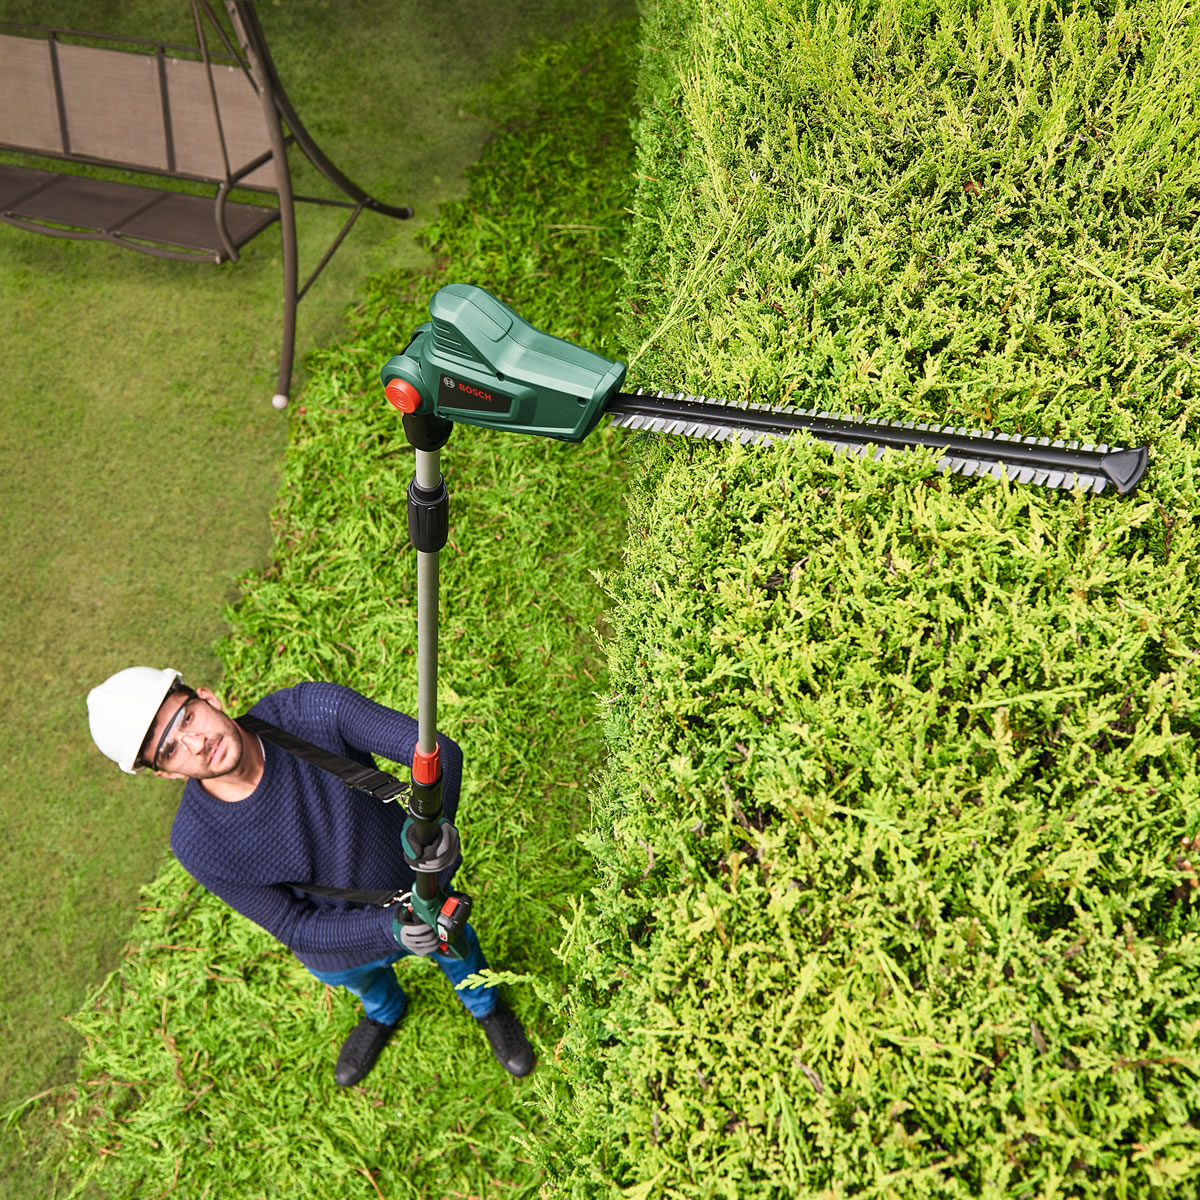 Extra image of Bosch HedgePole 18 Cordless Hedge Trimmer